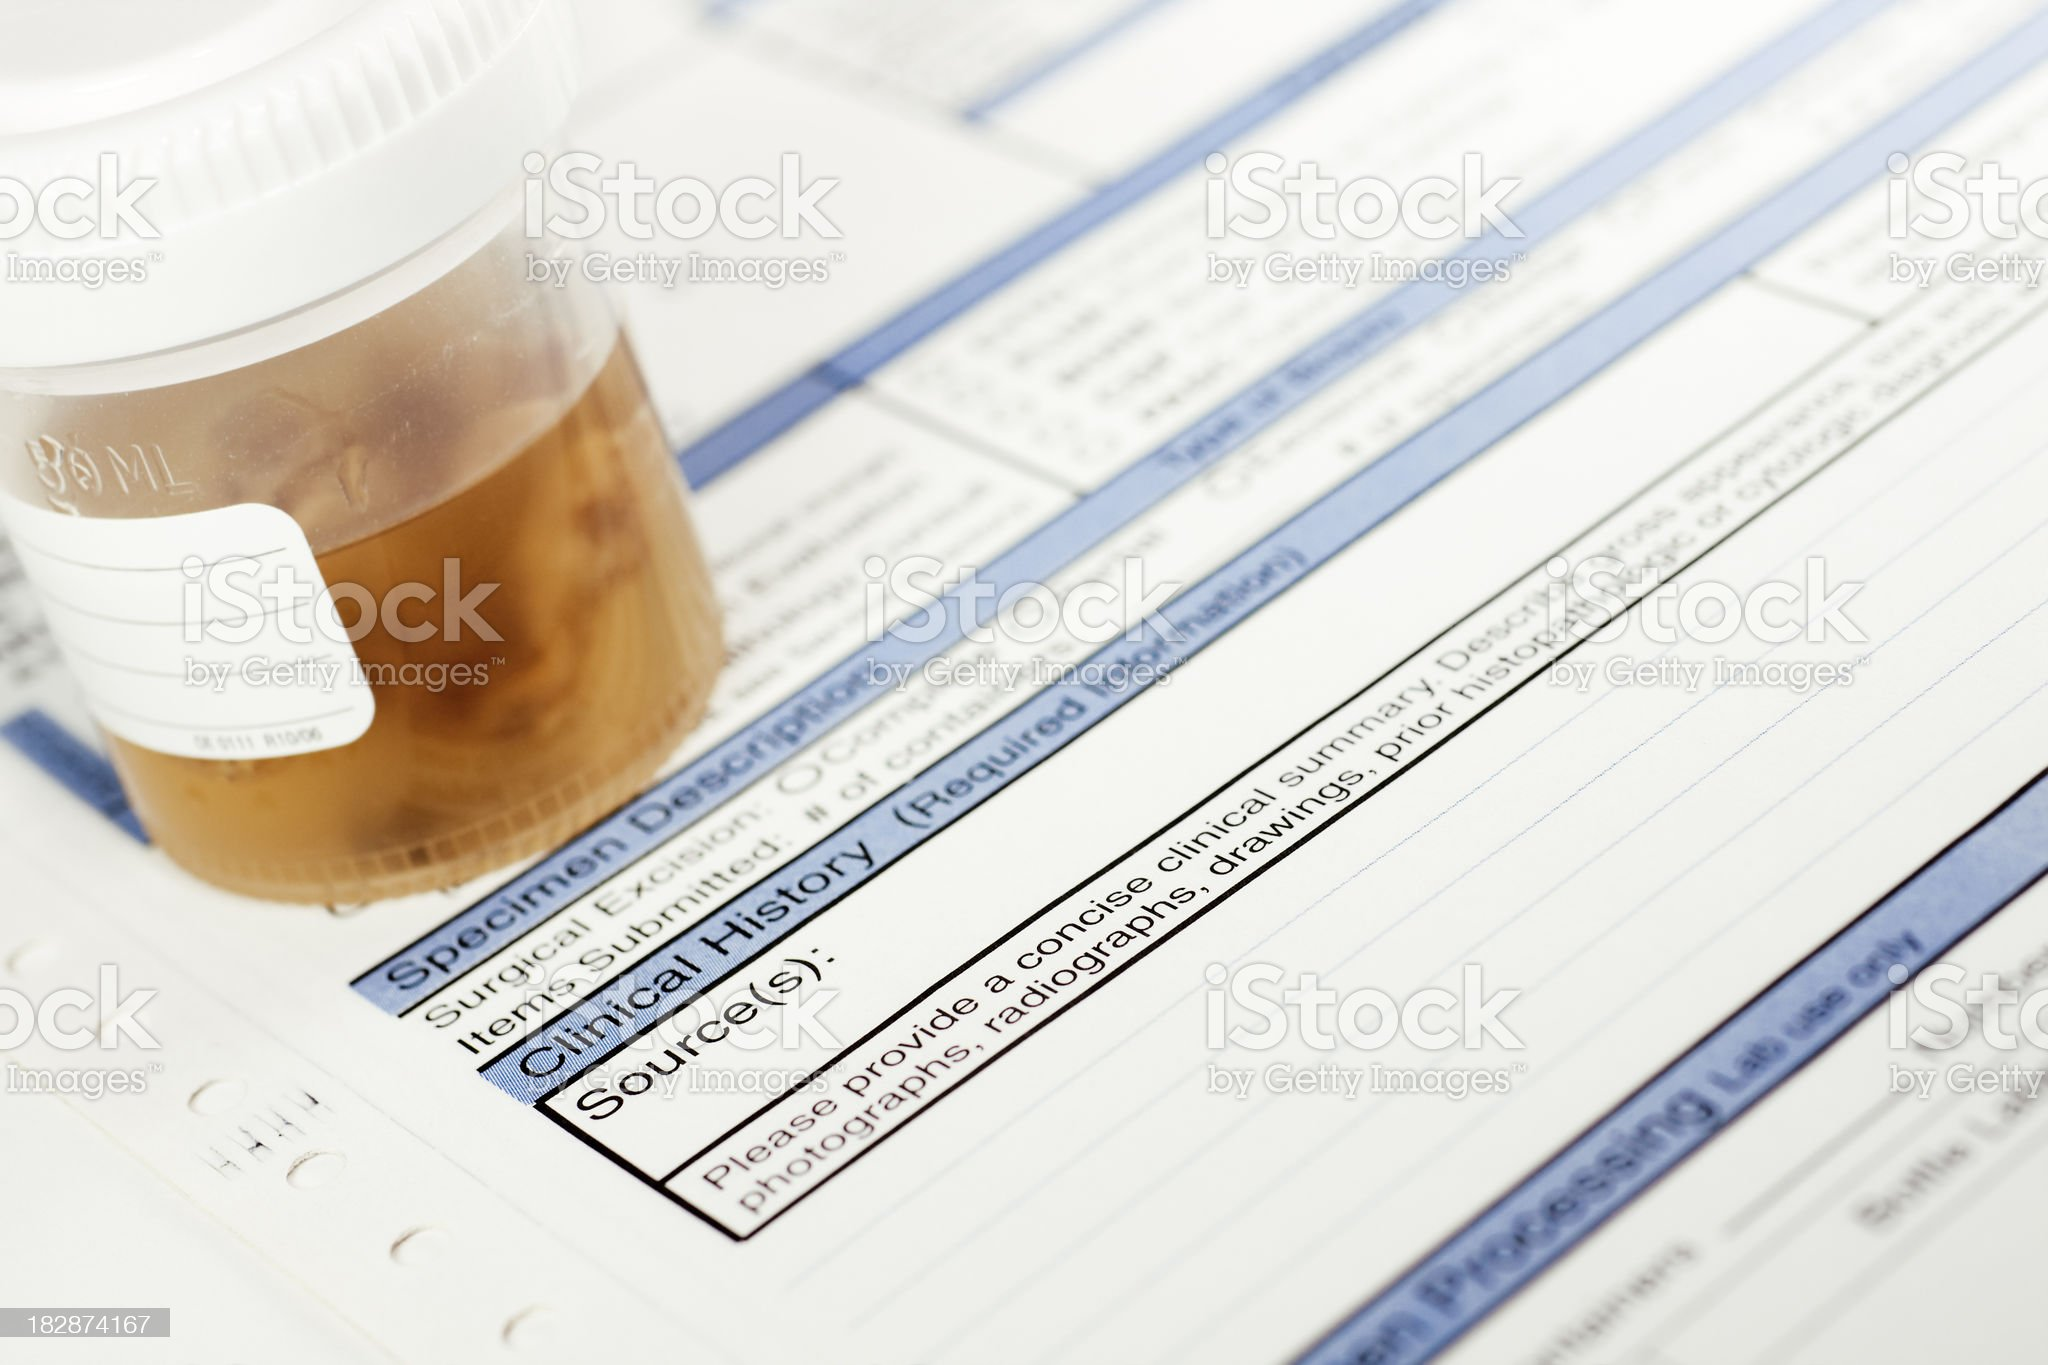 Pathology container with tissue sample and submission form royalty-free stock photo